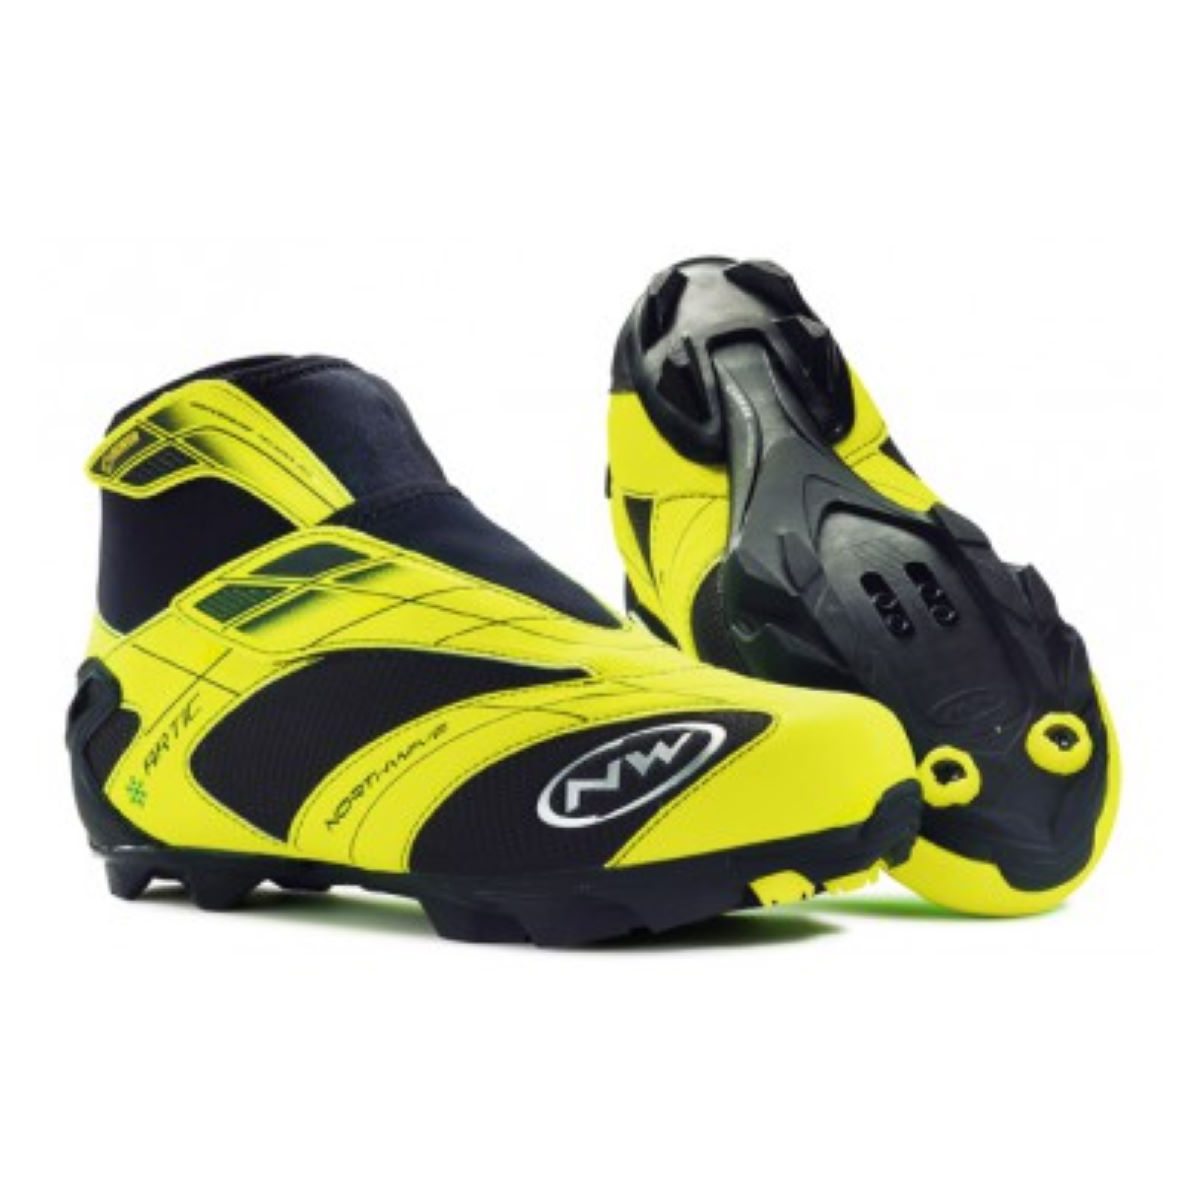 Carnac Mtb Shoes Reviews